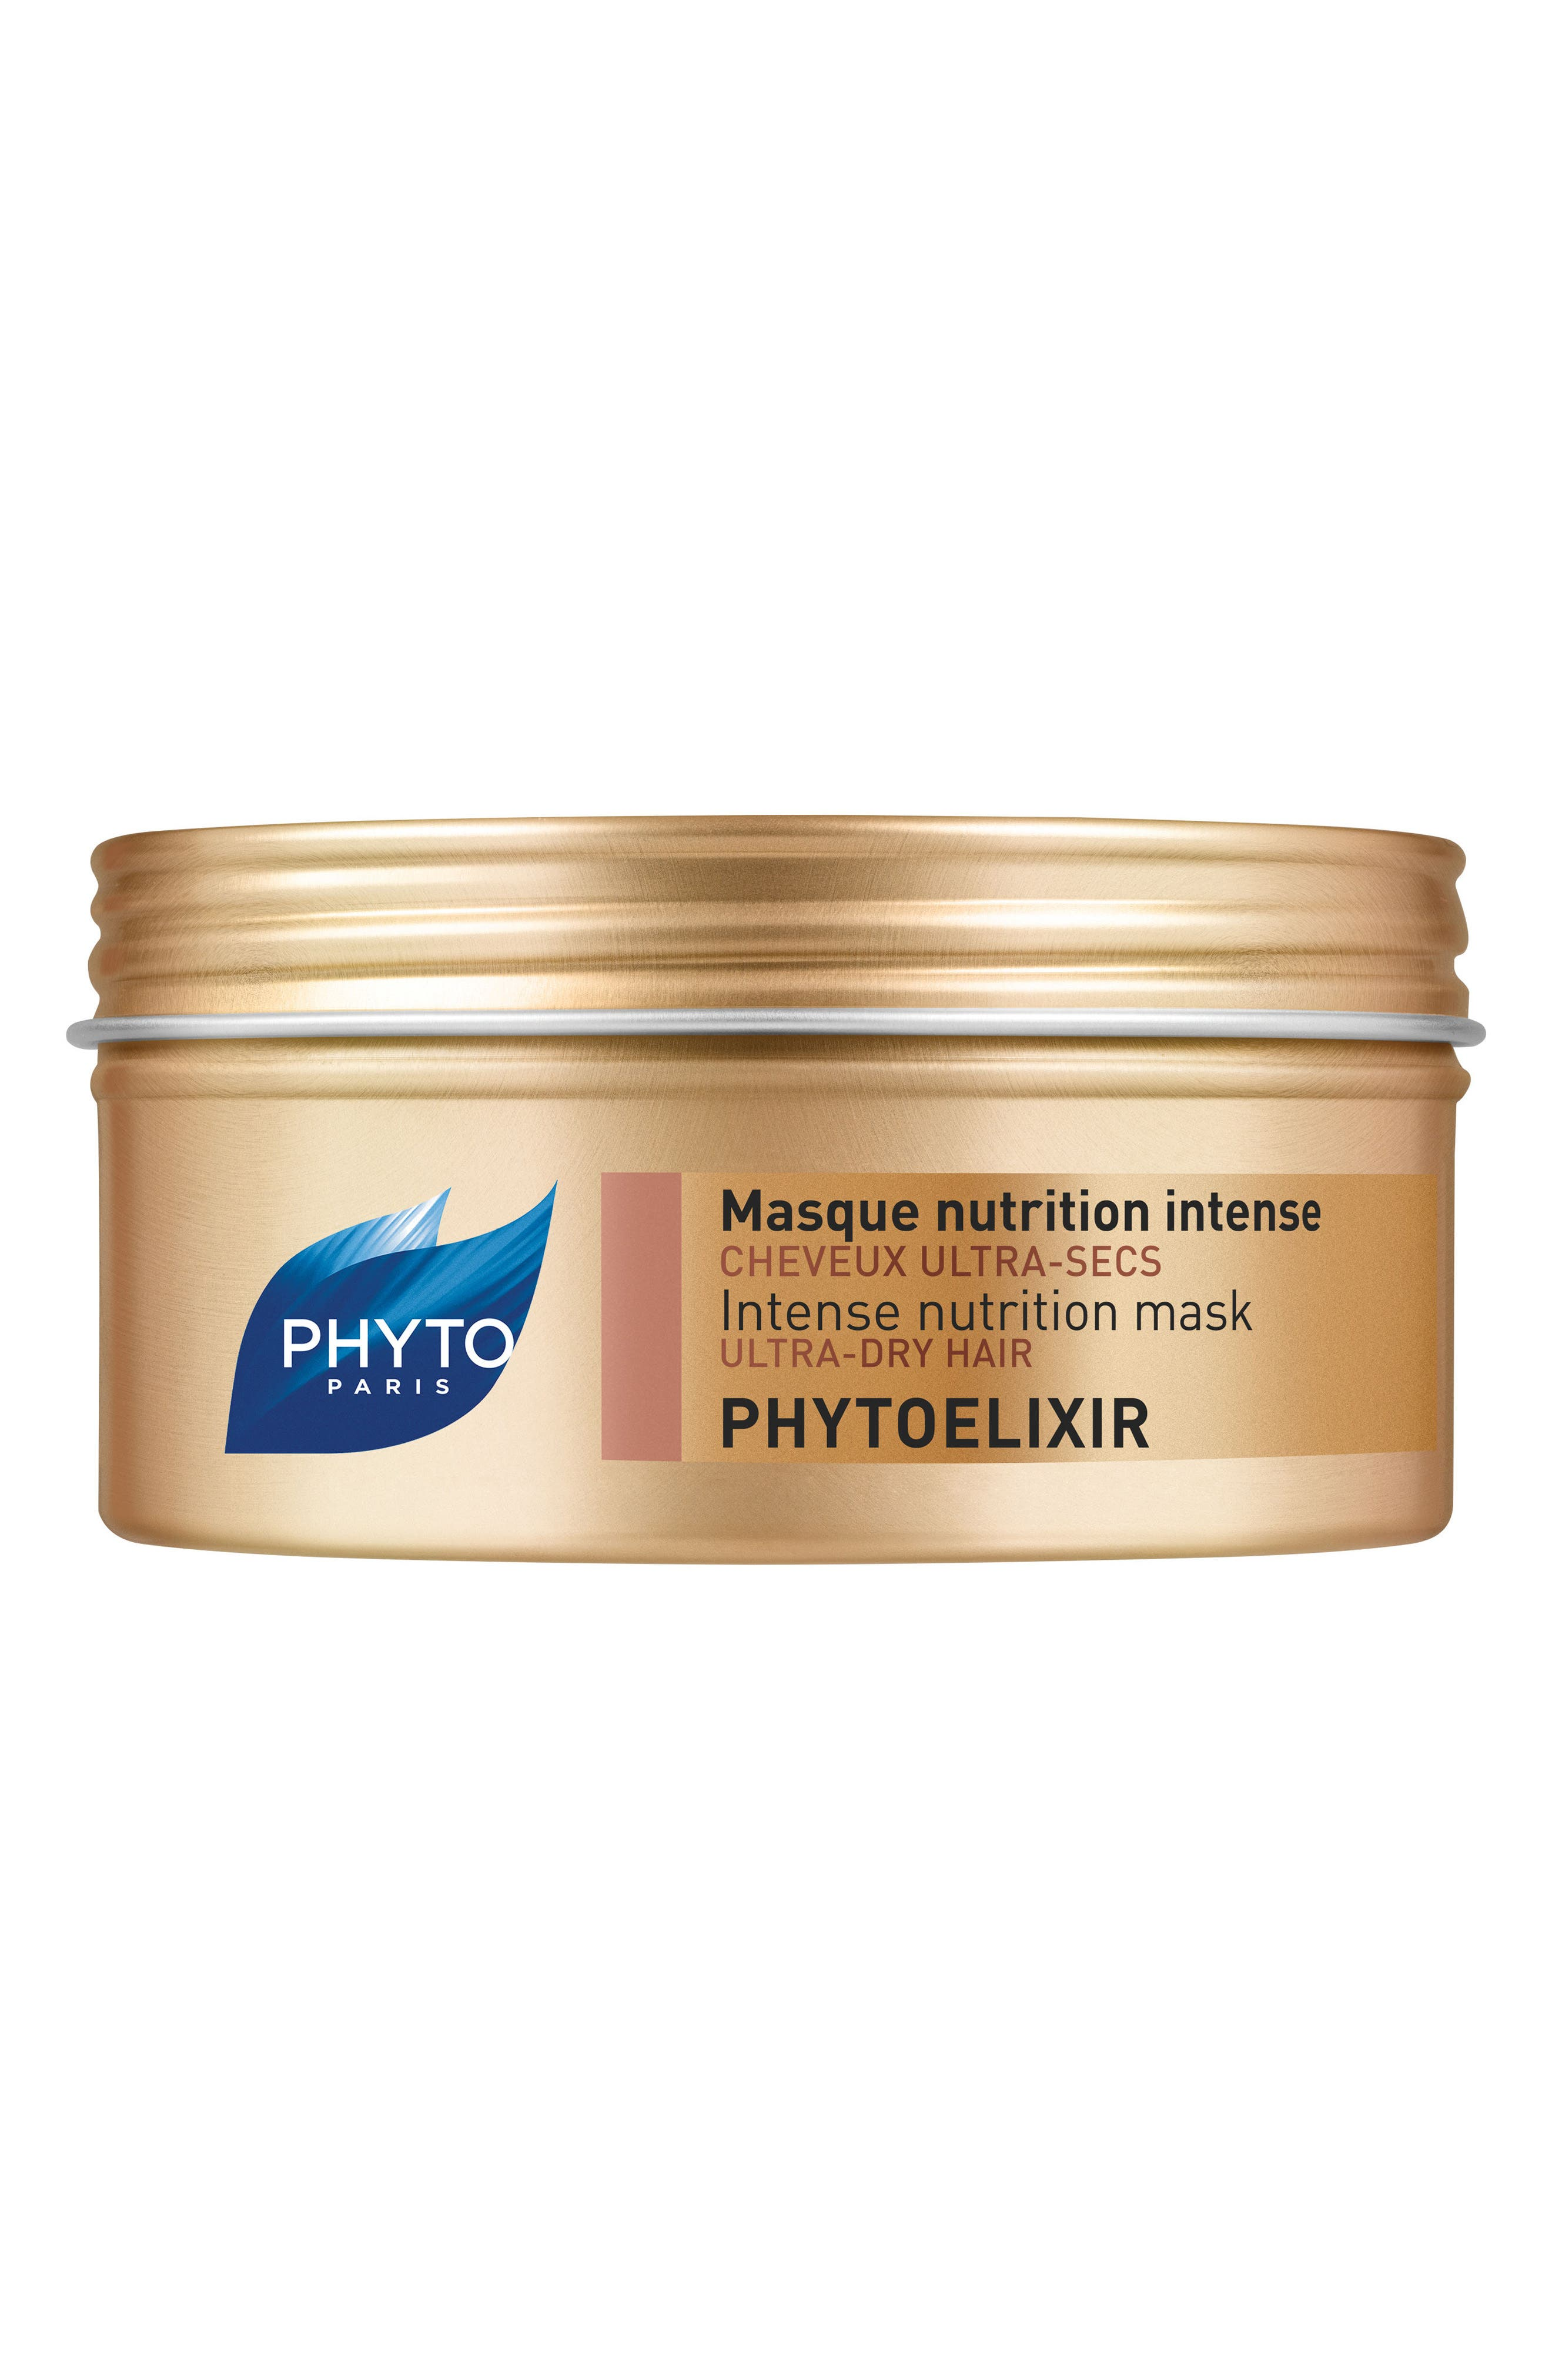 Phytoelixir Intense Nutrition Mask,                             Main thumbnail 1, color,                             NO COLOR